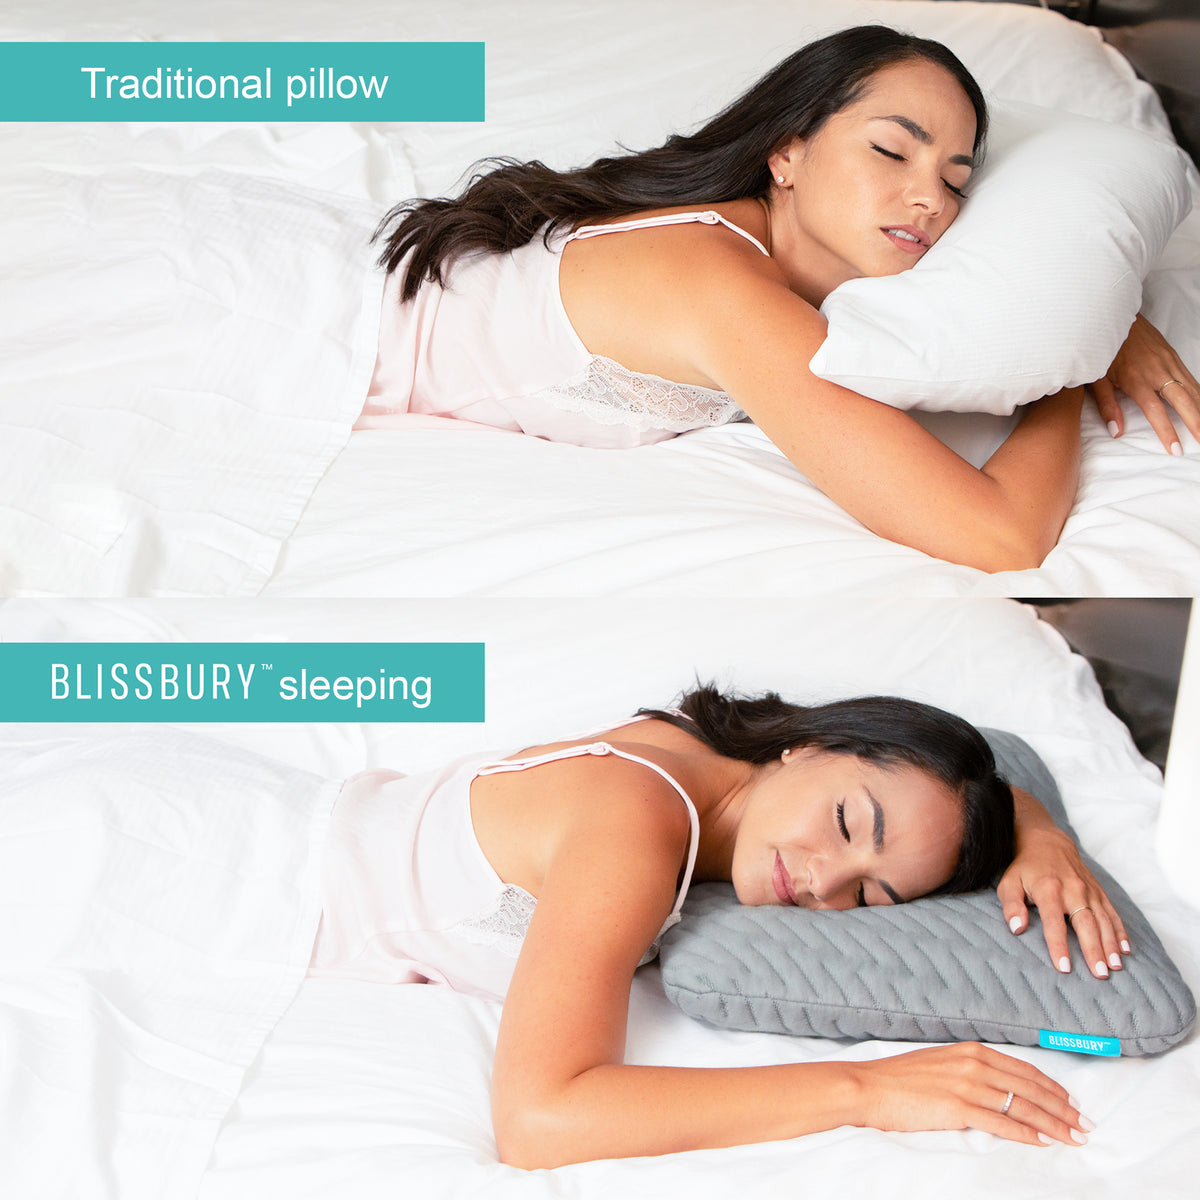 Blissbury Stomach Sleeping Pillow Extra Thin And Flat To